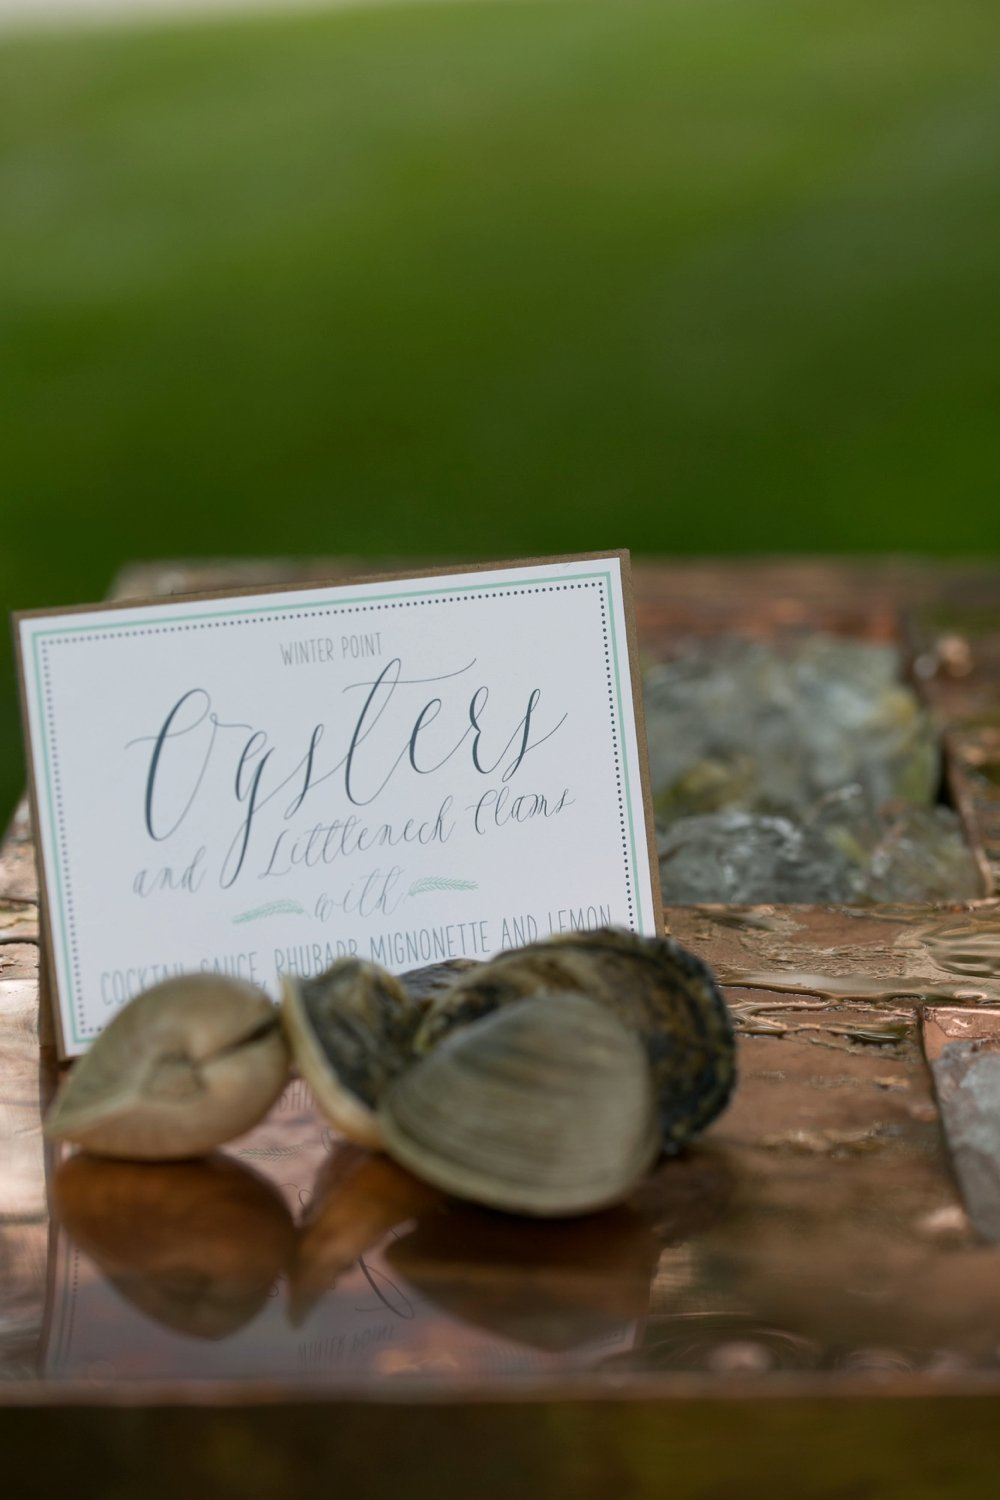 Oyster cocktail hour station via Eventide for rustic wedding at The Barn on Walnut Hill in Maine